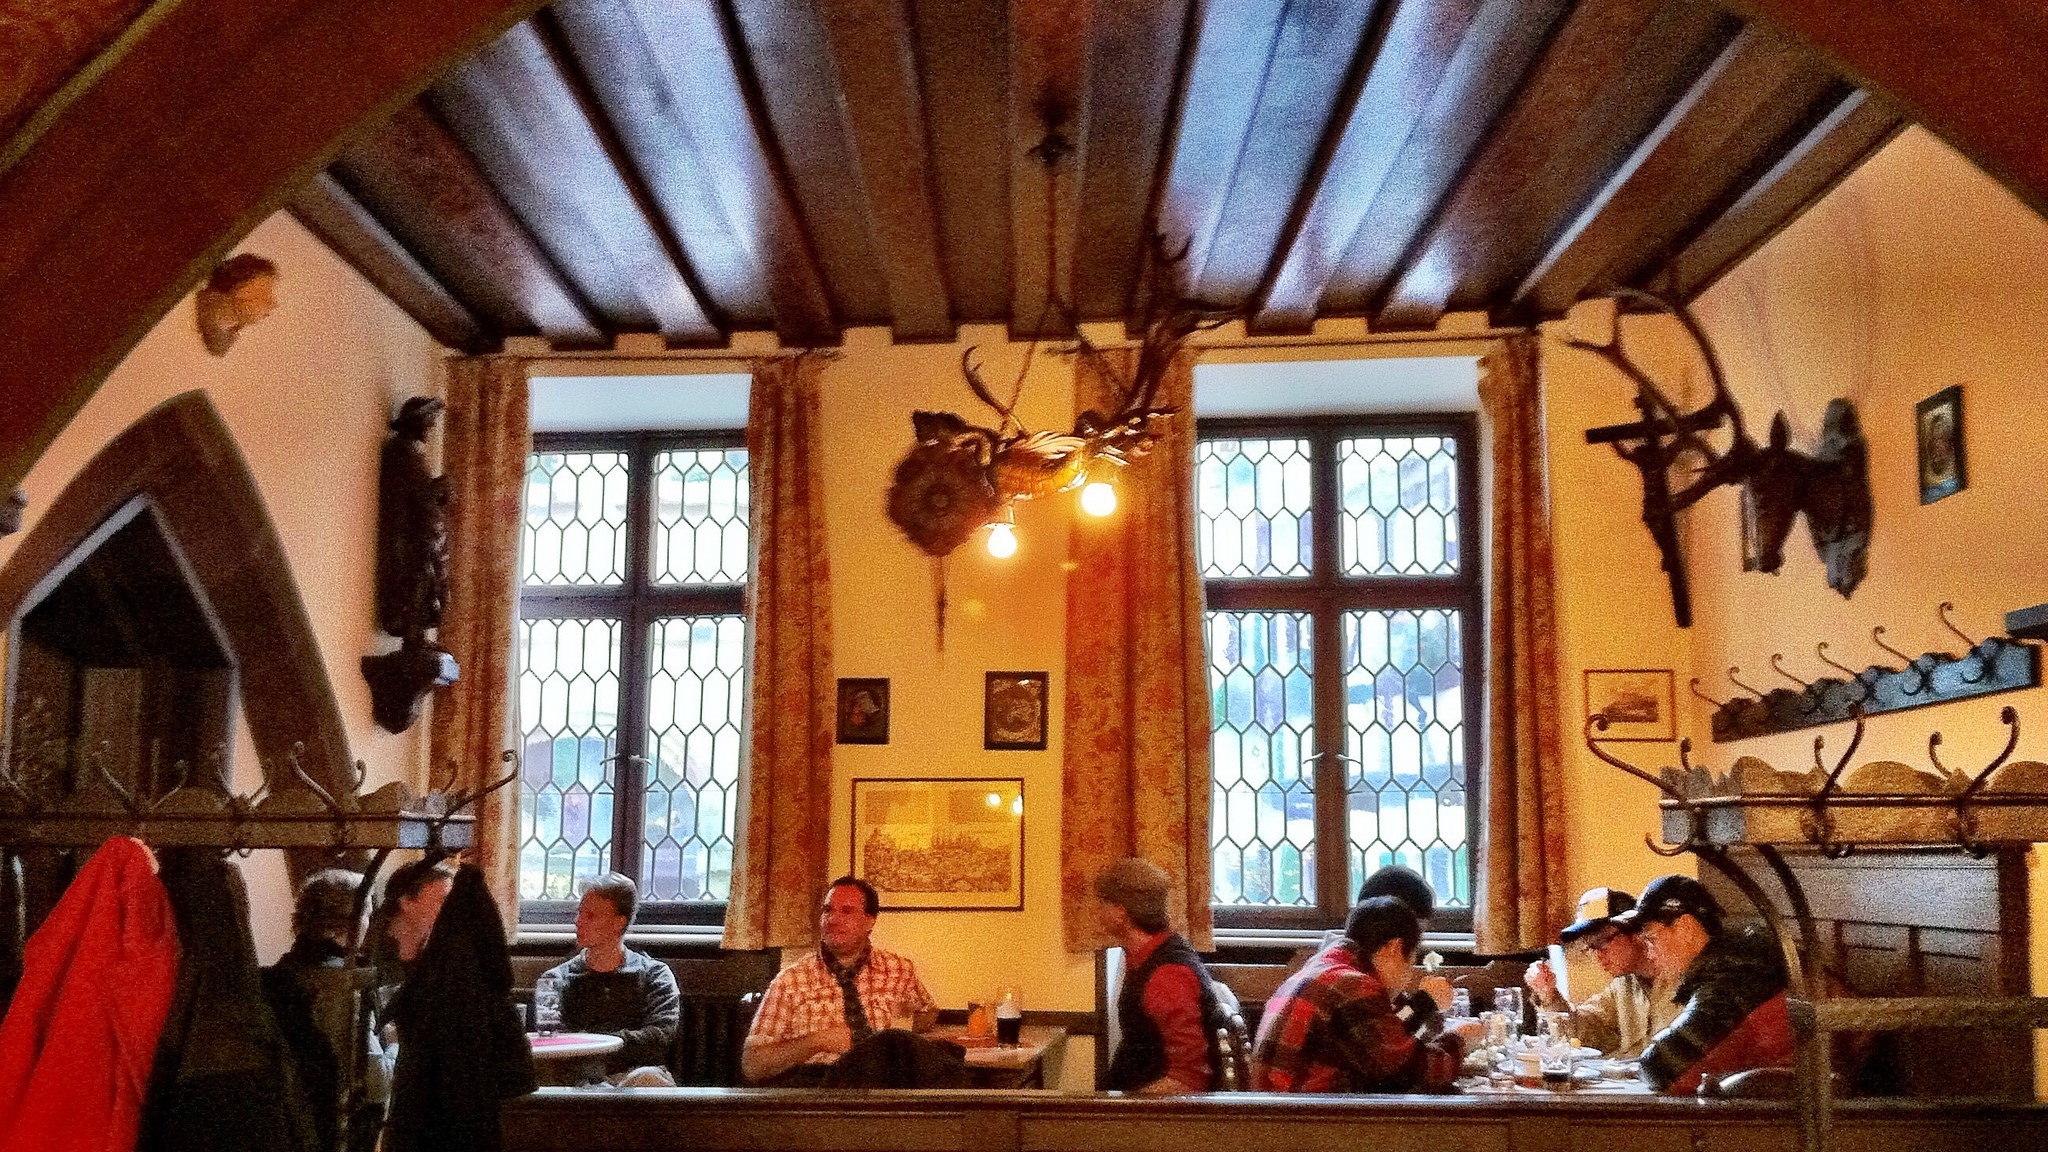 Schlenkerla's 600-year-old pub with oxblood-stained wood.